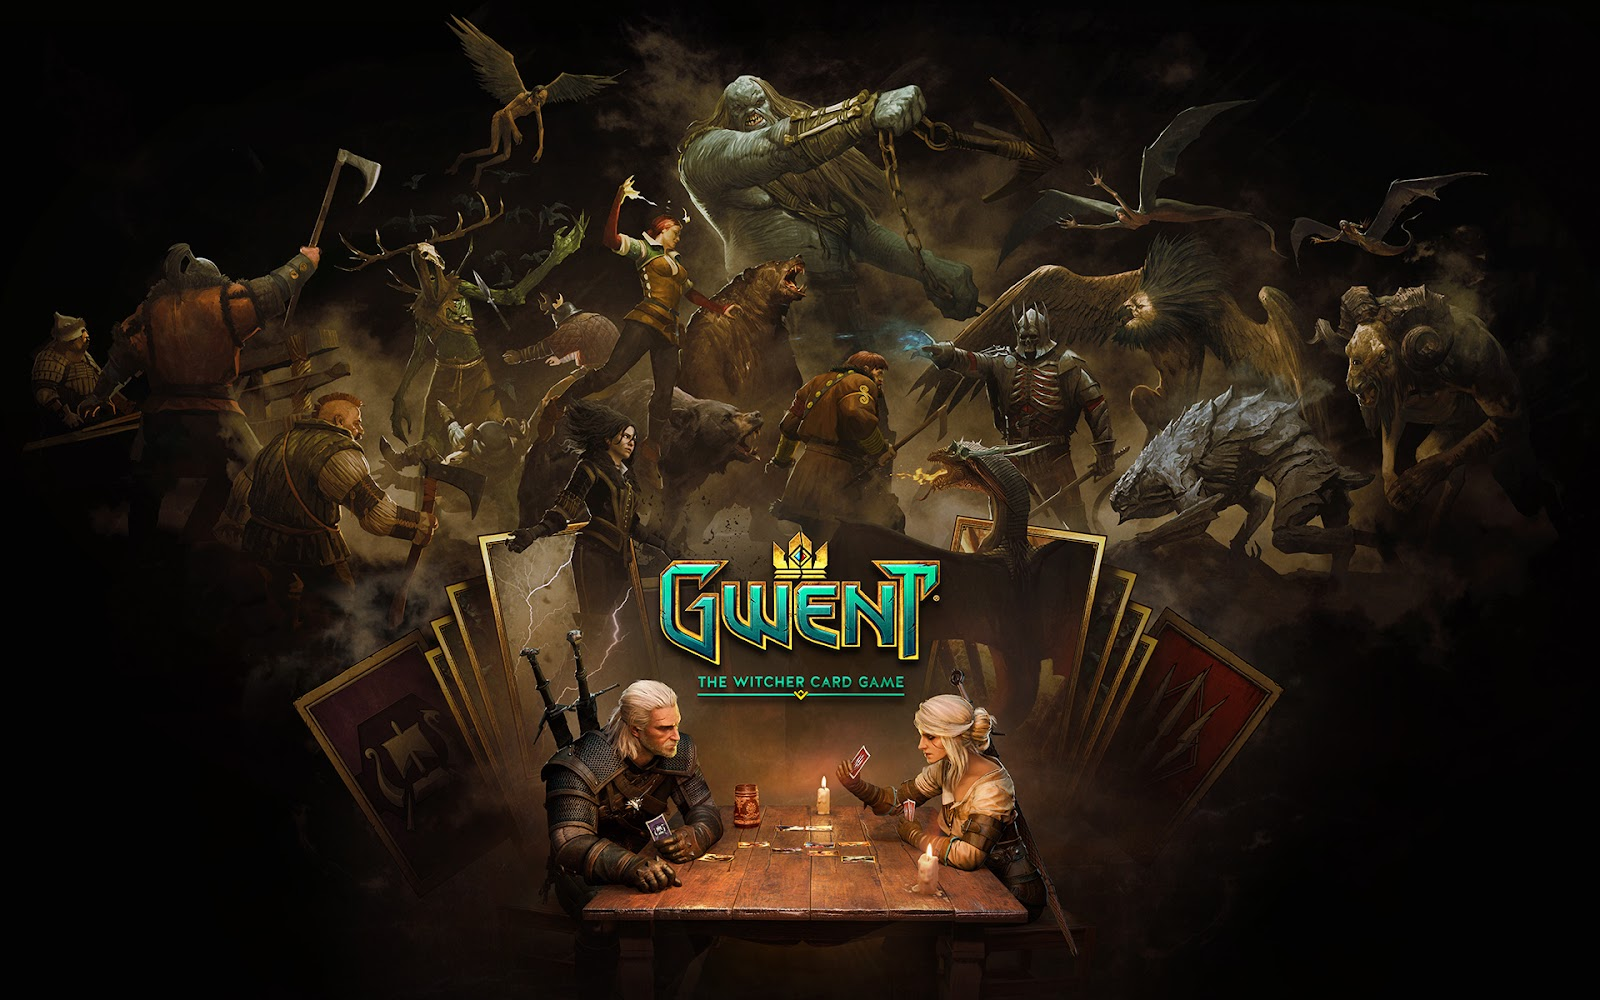 [Review] Gwent : The Witcher Card Game เกมการ์ดจากซีรีส์ The Witcher 19